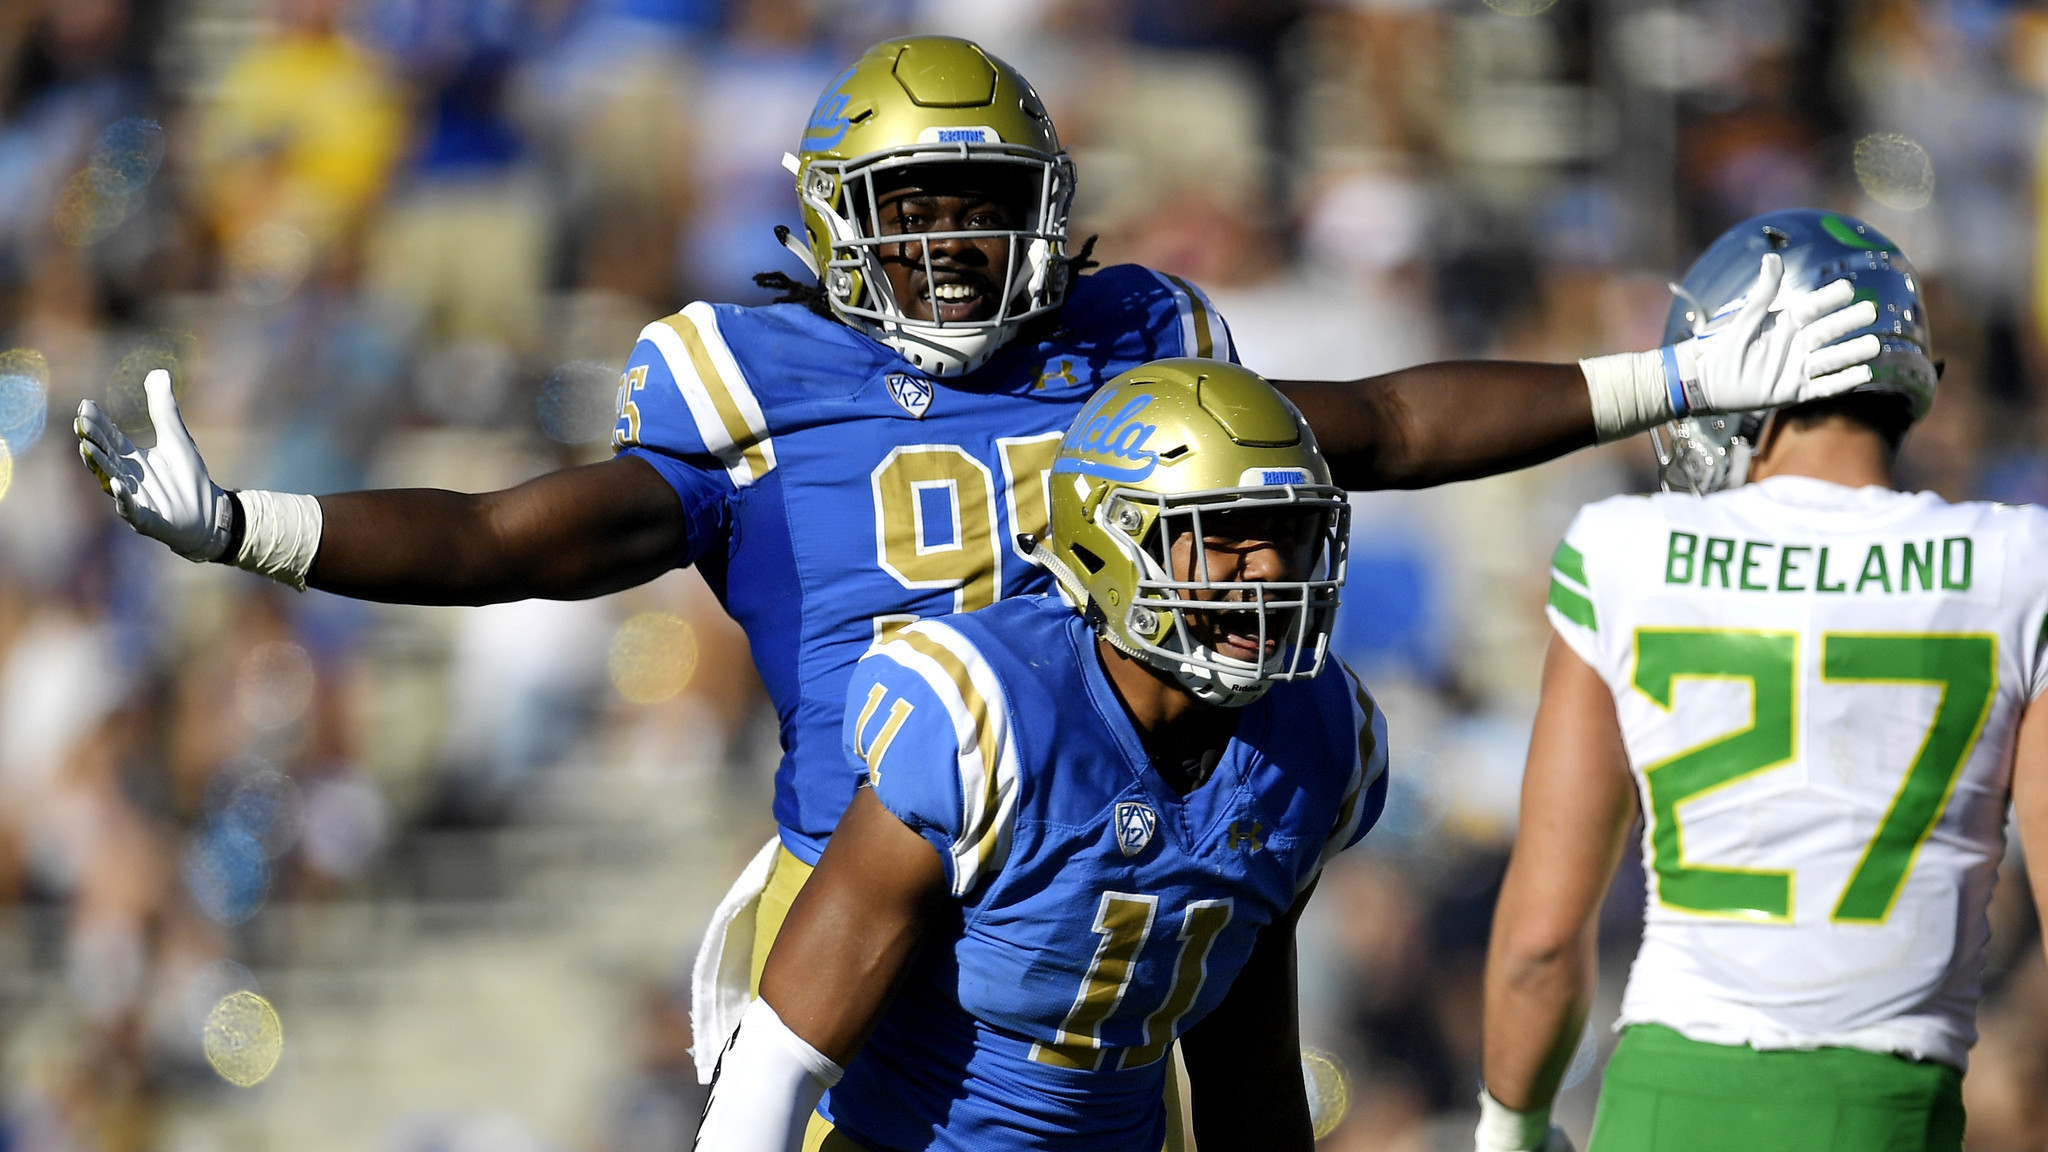 Untested freshmen play big for UCLA after injuries deplete defense